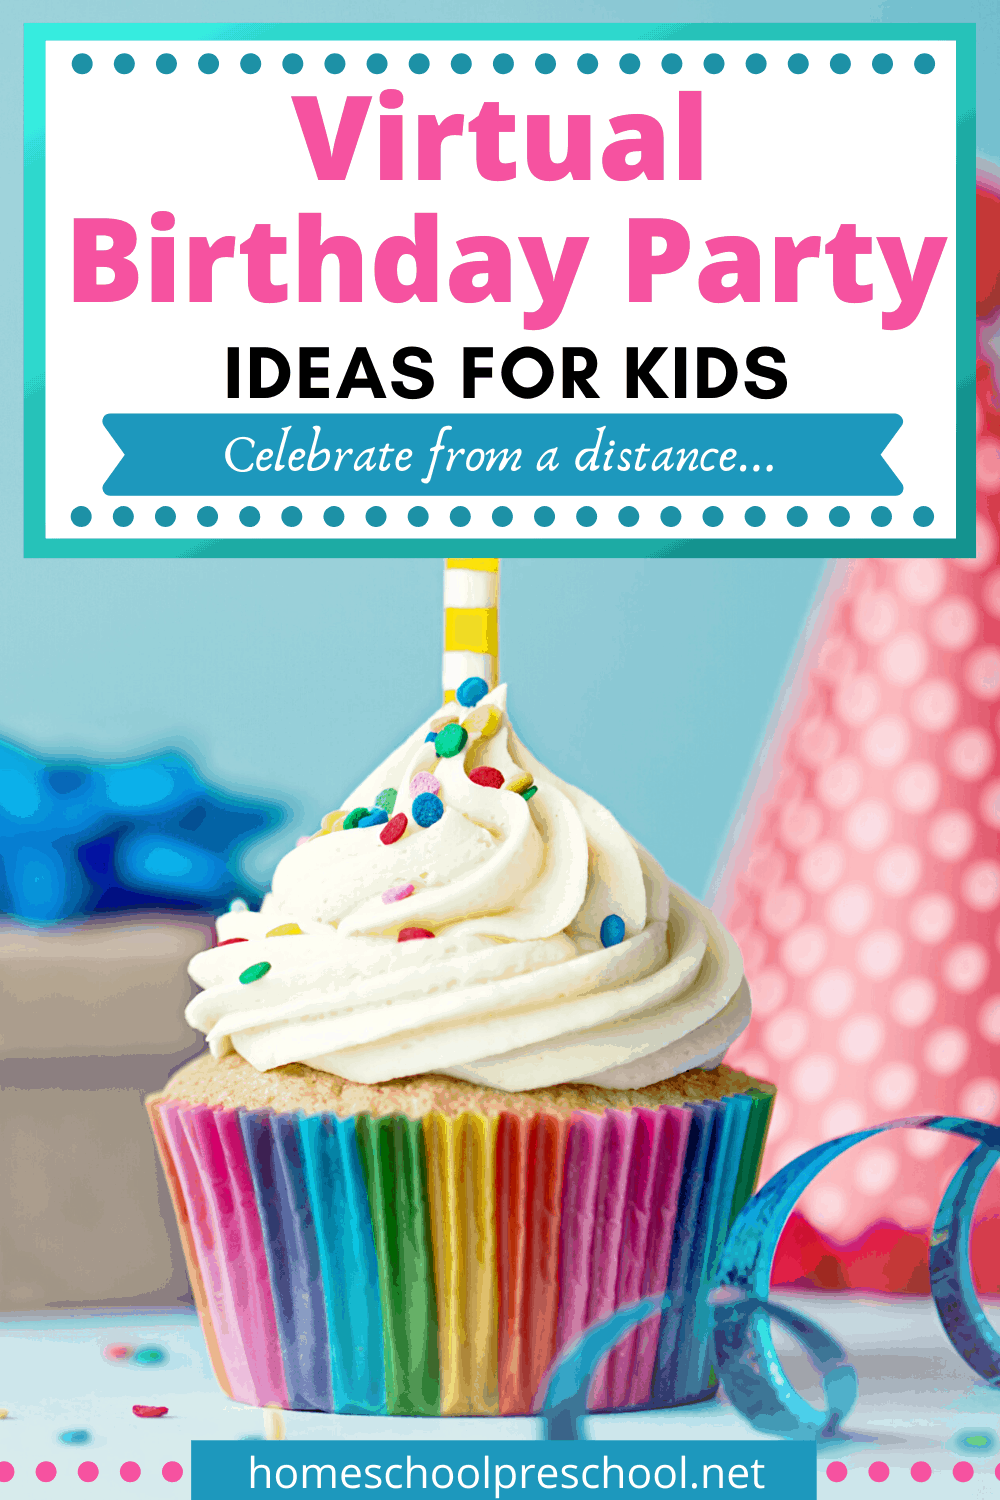 These virtual birthday party ideas are a great way to create a special day when you can't be together! Long distance parties provide a unique way to celebrate.